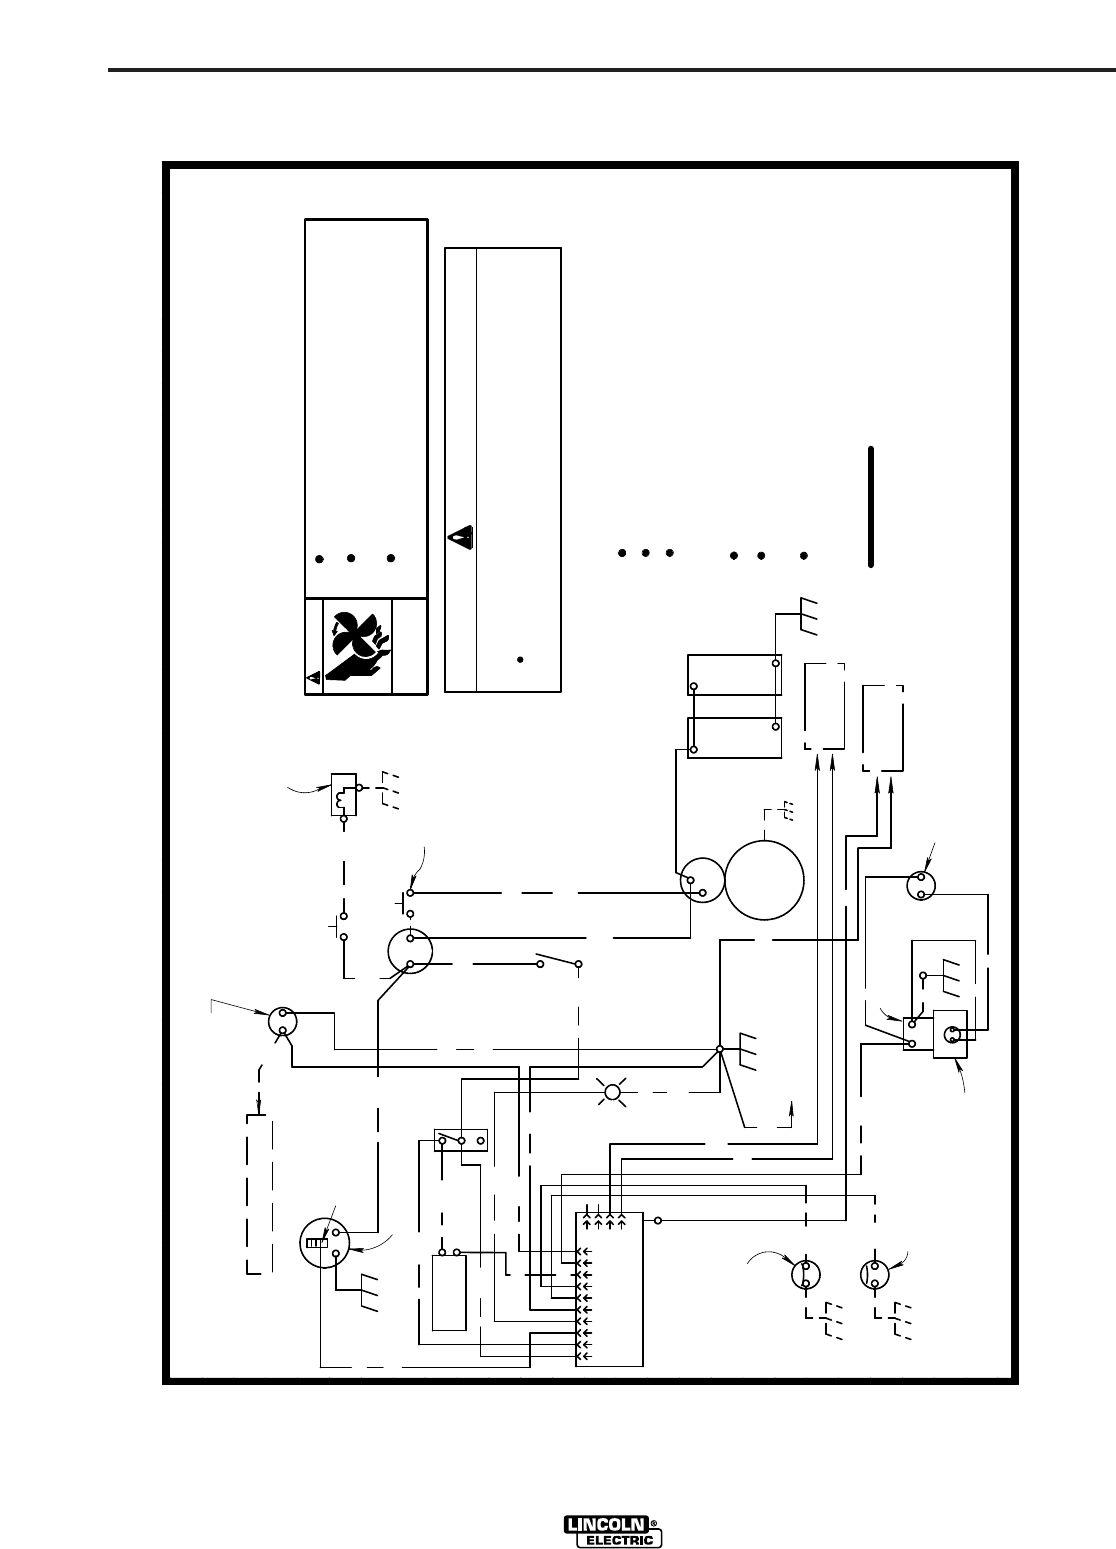 e2a89499 b0e2 42d7 bdea 919582343e30 bg1f welders lincoln sam 400 wiring diagram wiring diagrams lincoln sae 400 wiring diagram at creativeand.co